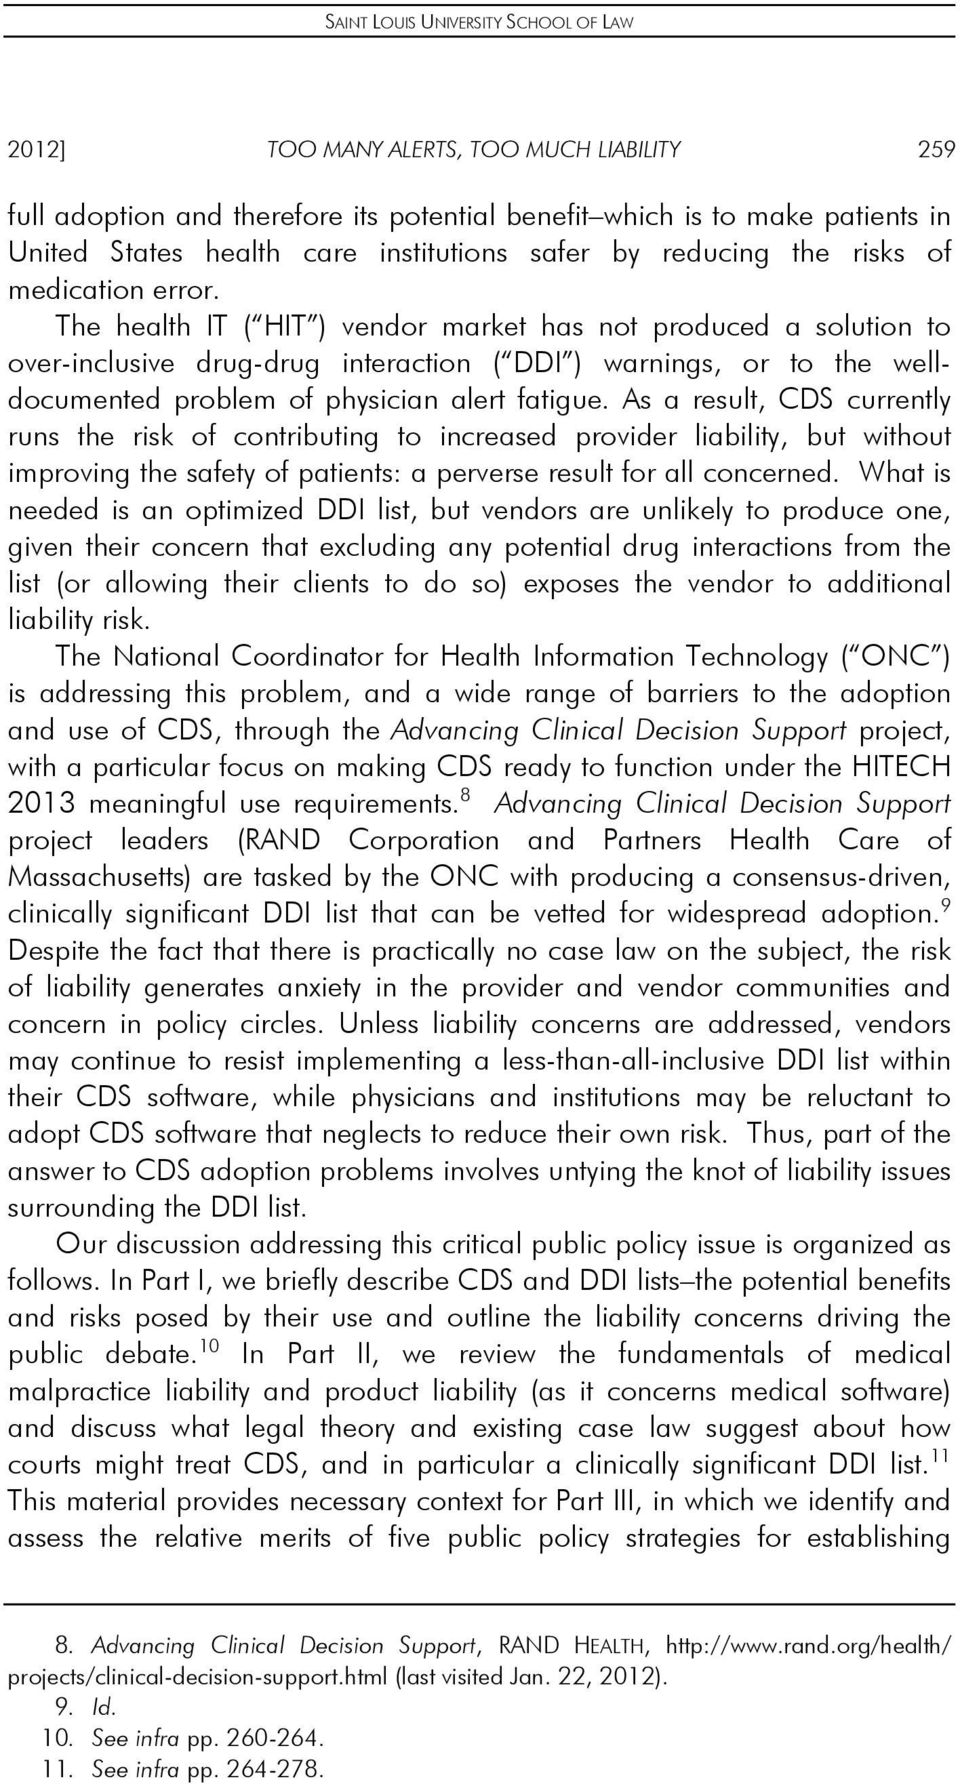 As a result, CDS currently runs the risk of contributing to increased provider liability, but without improving the safety of patients: a perverse result for all concerned.